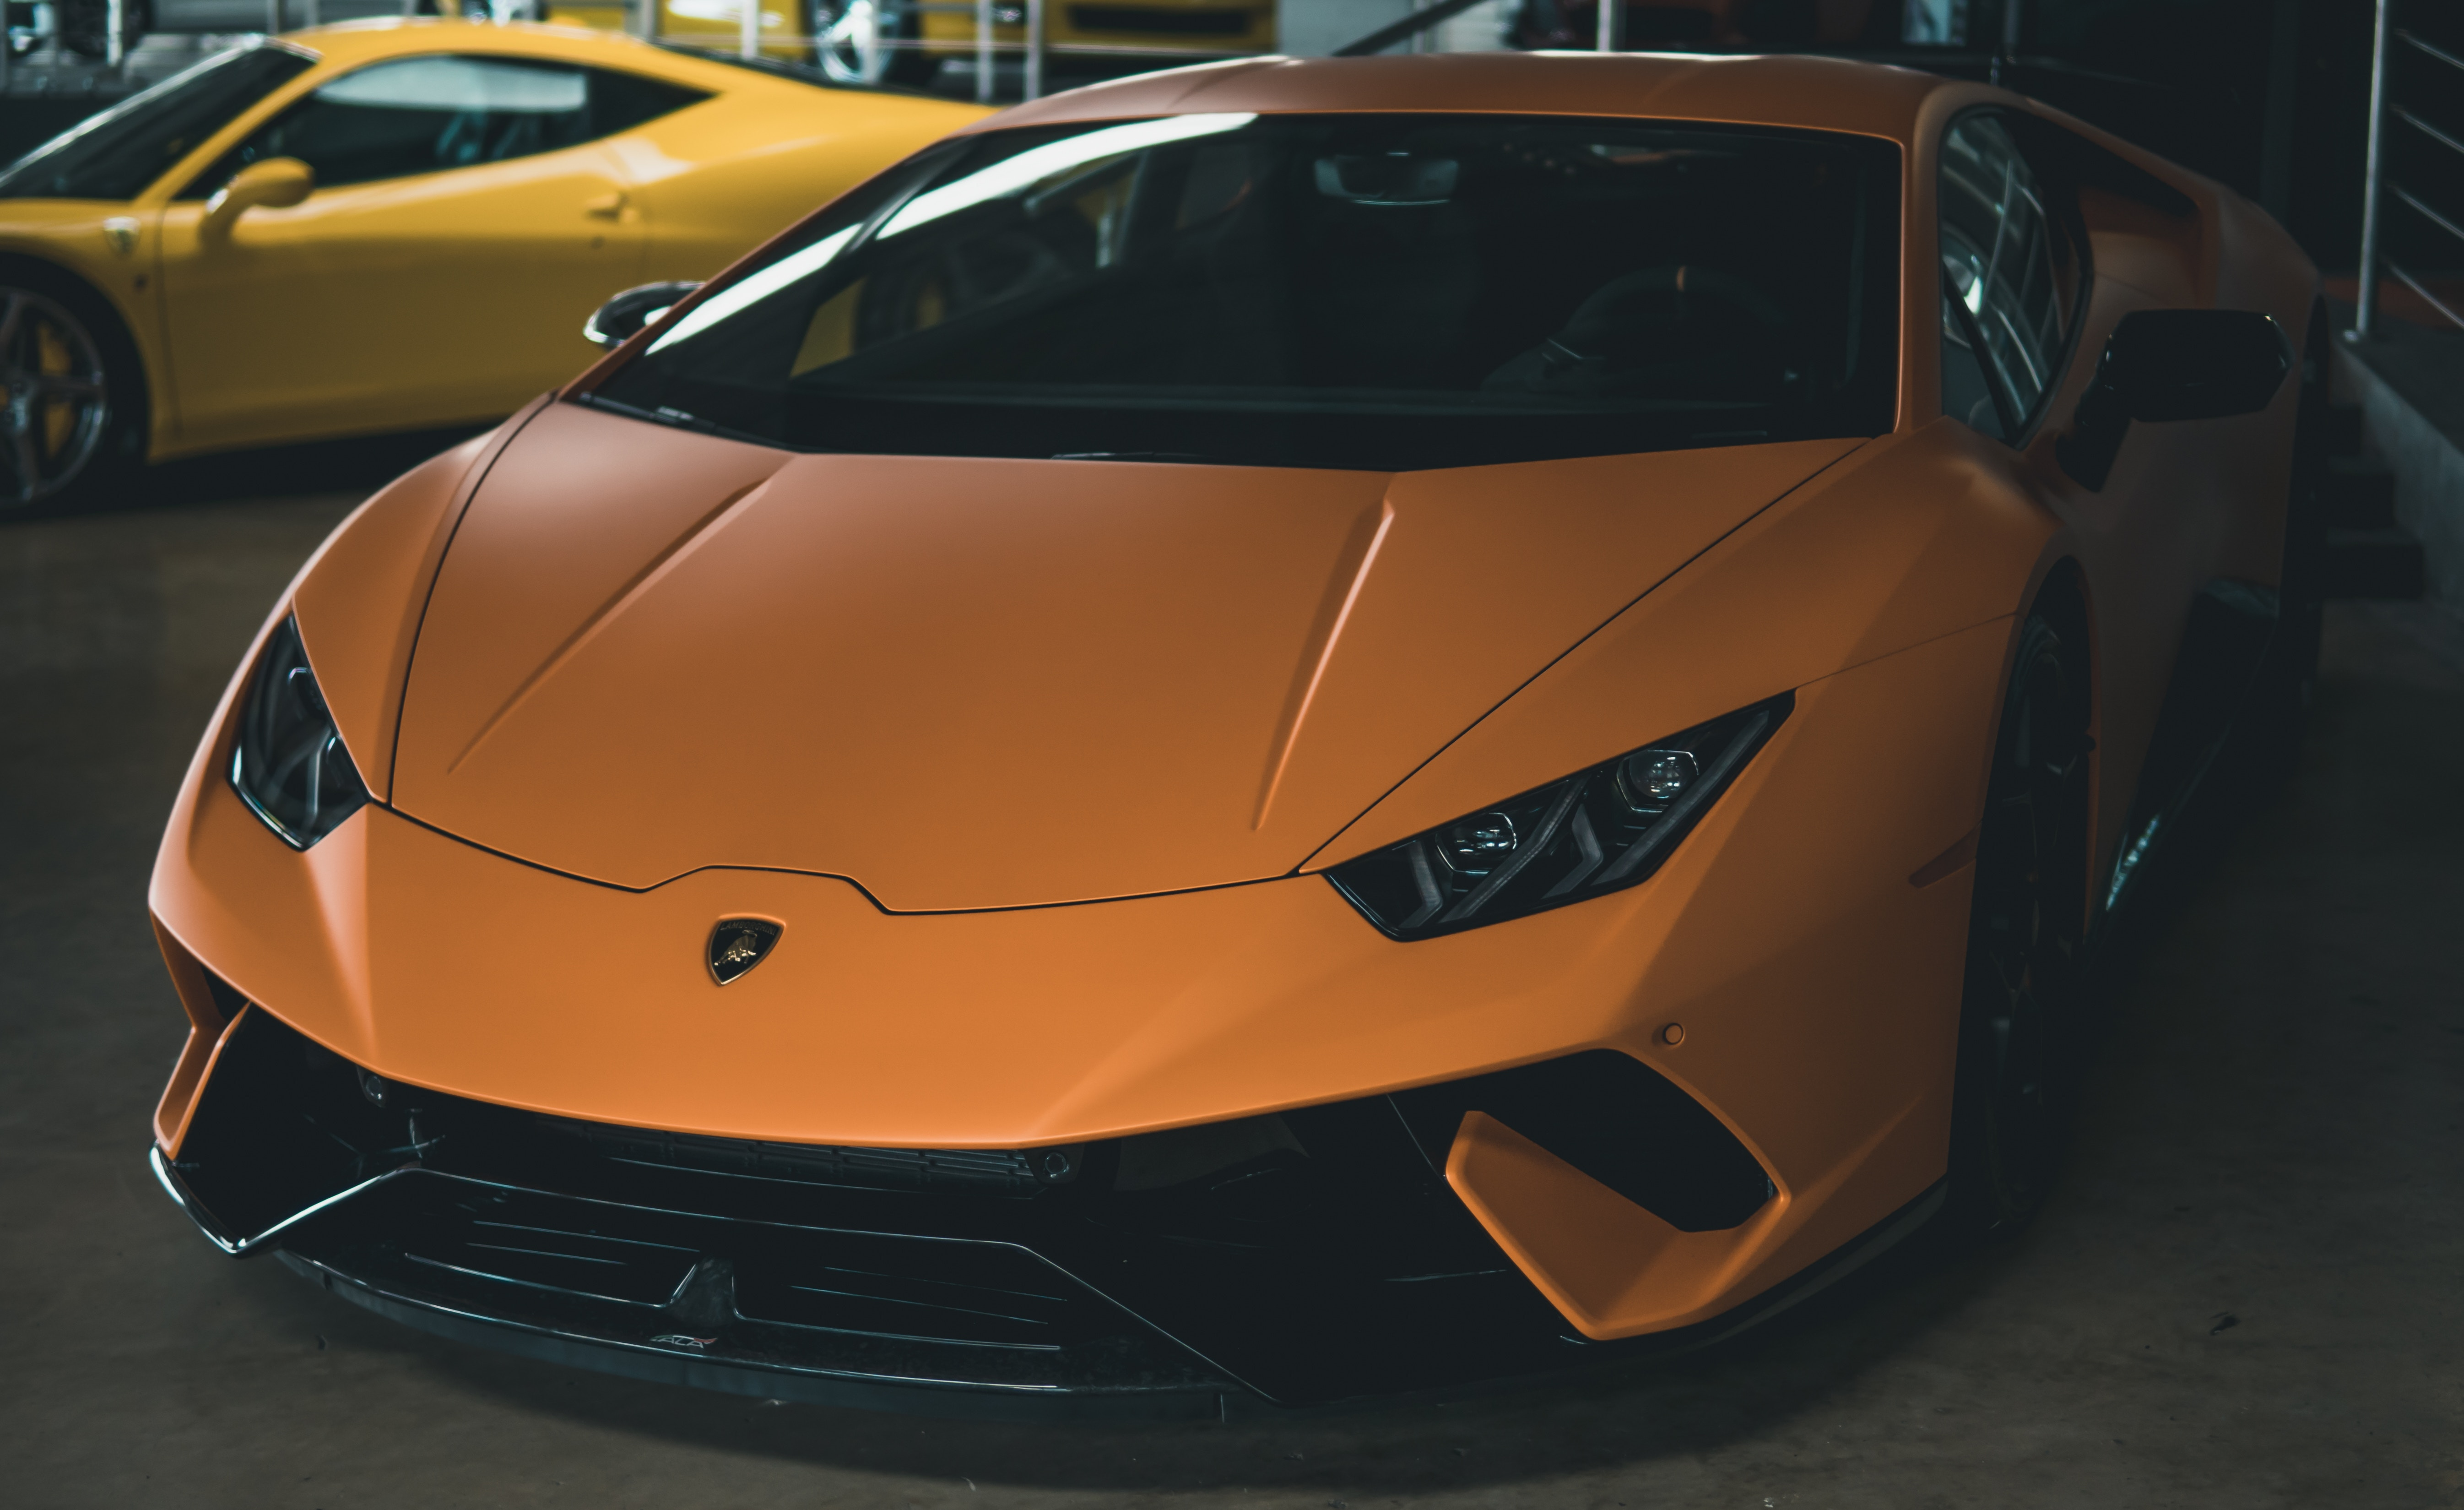 117556 download wallpaper Cars, Auto, Sports Car, Sports, Front View, Headlights, Lights screensavers and pictures for free